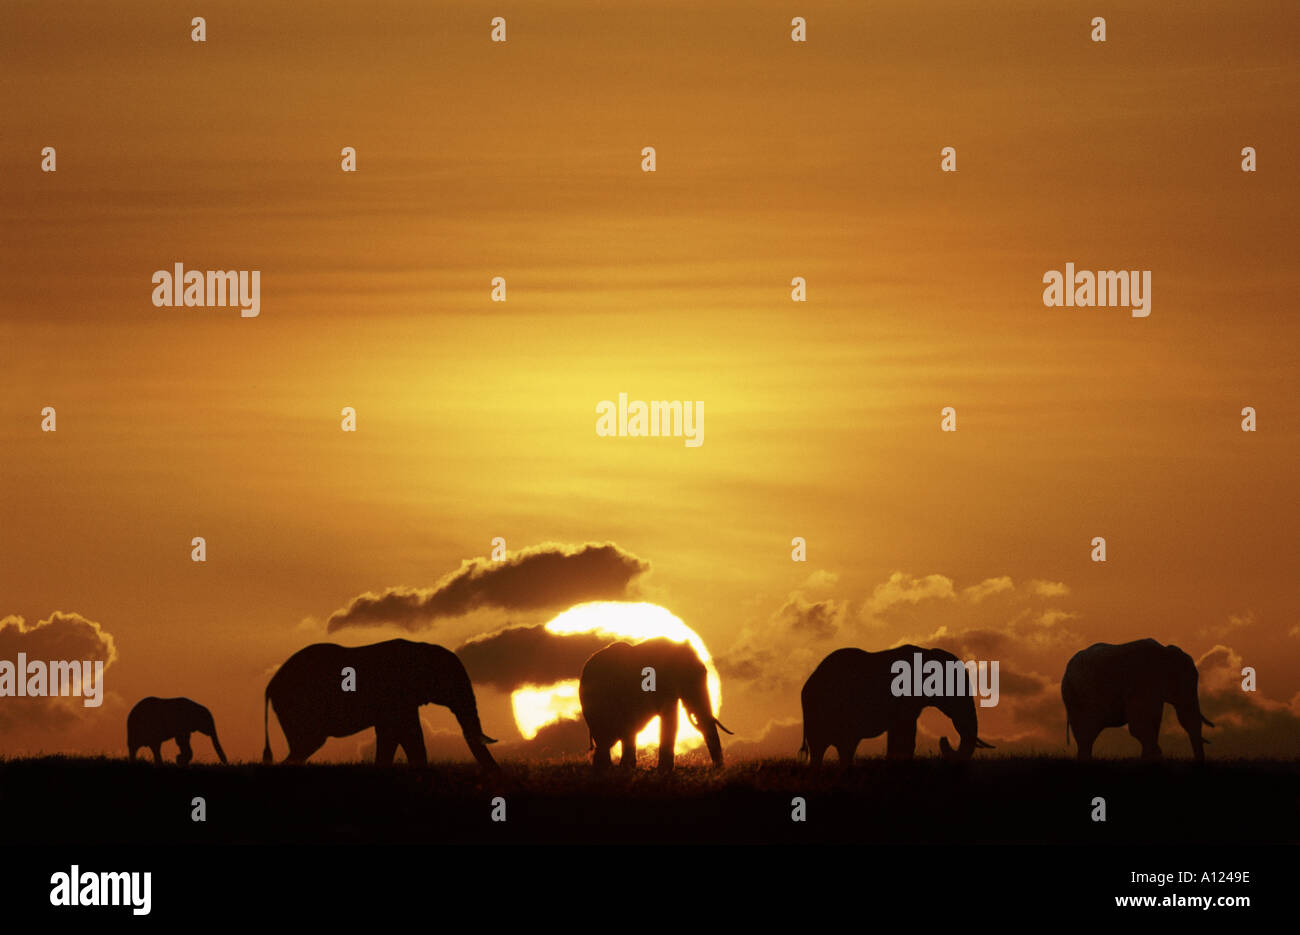 Elephants silhouetted against the rising sun Masai Mara Kenya - Stock Image